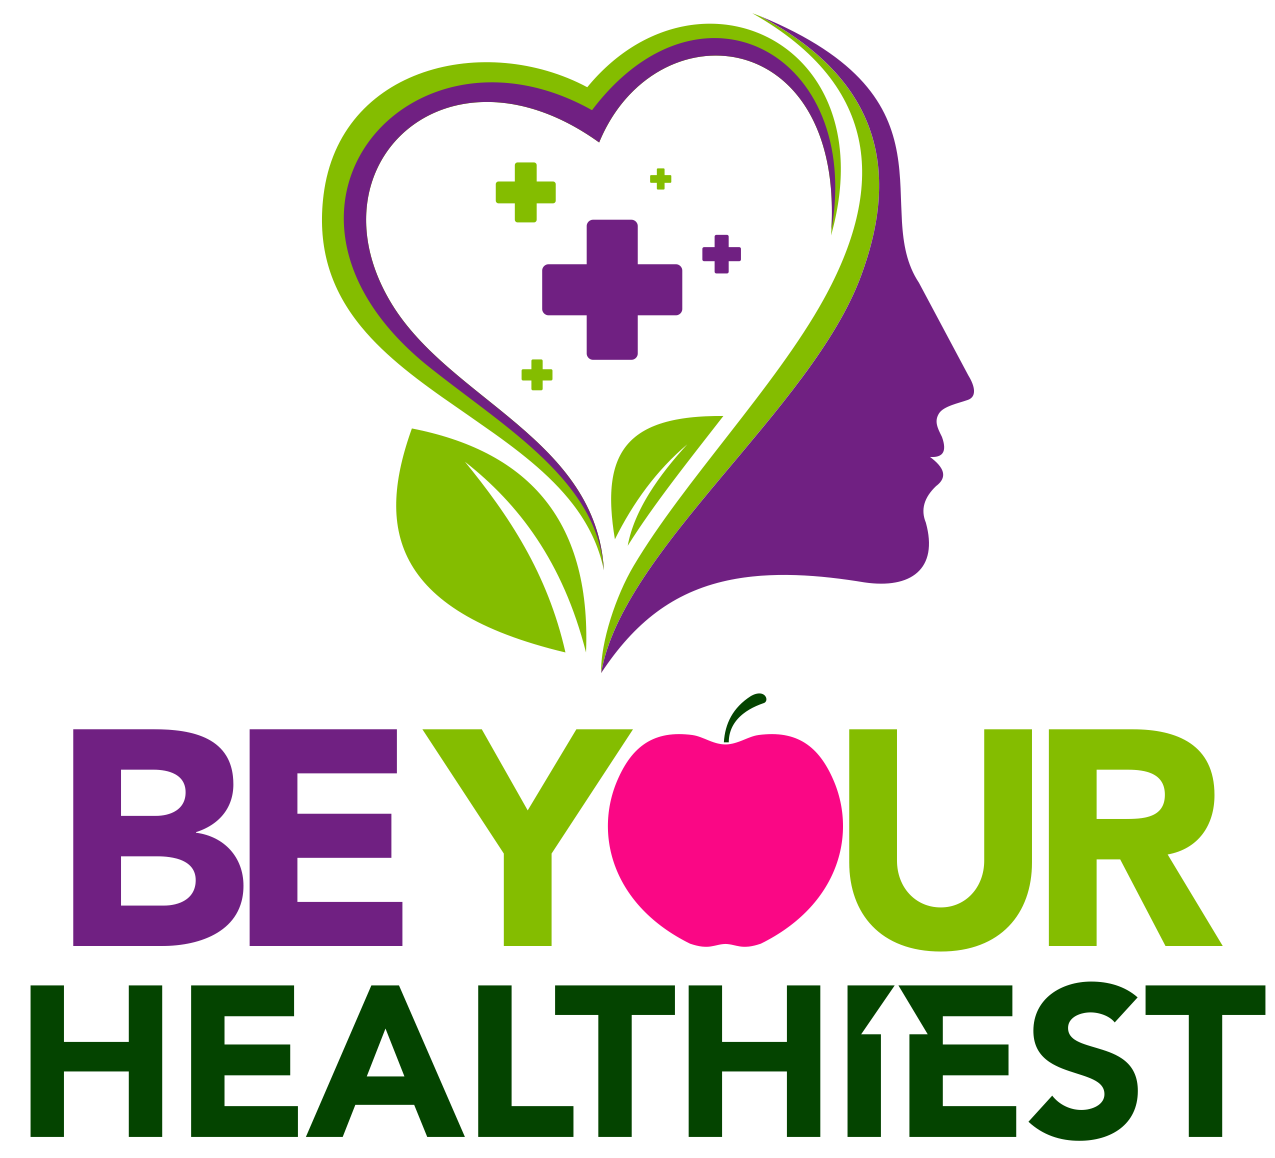 Be Your Healthiest-logo-1